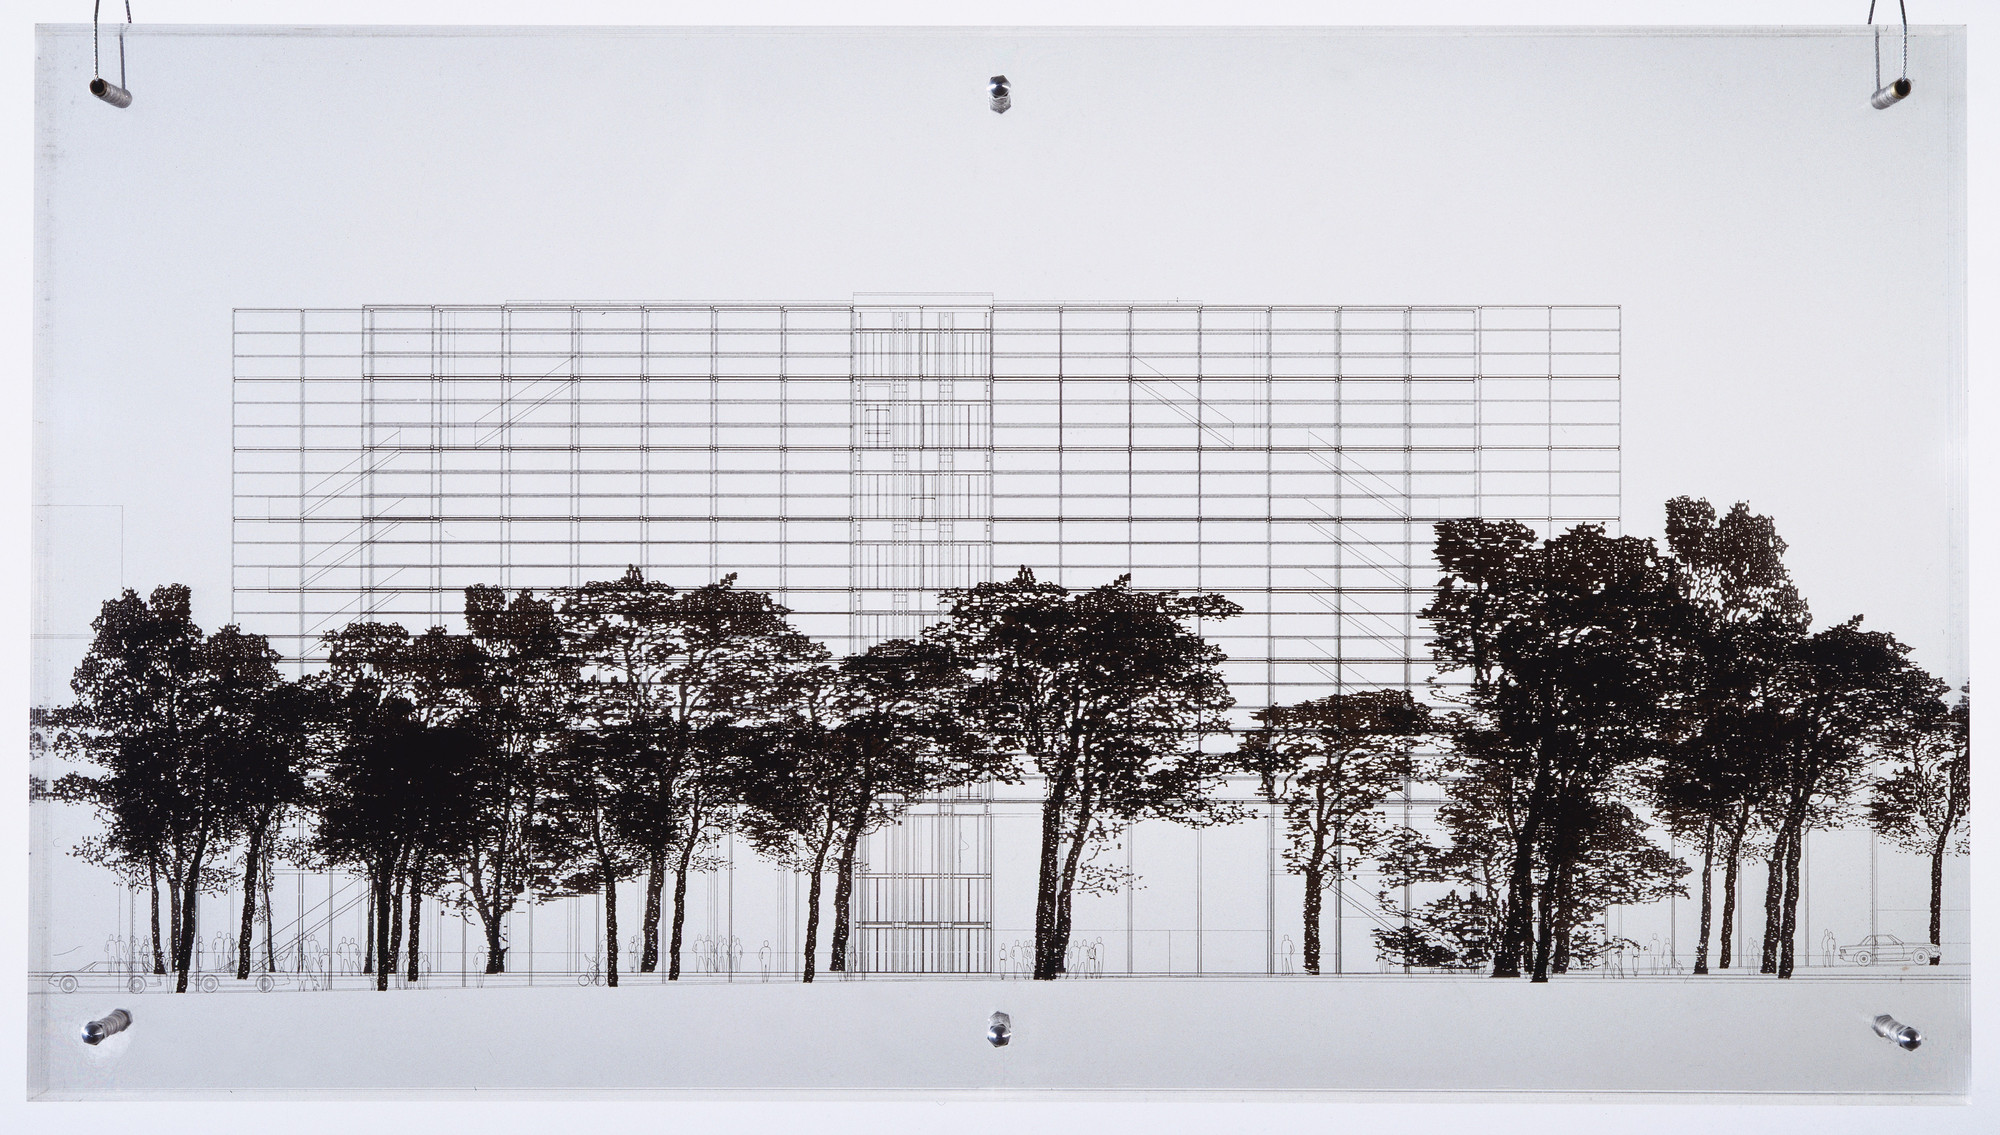 Jean Nouvel. Cartier Foundation for Contemporary Art, Paris, France, Elevation. 1992-93